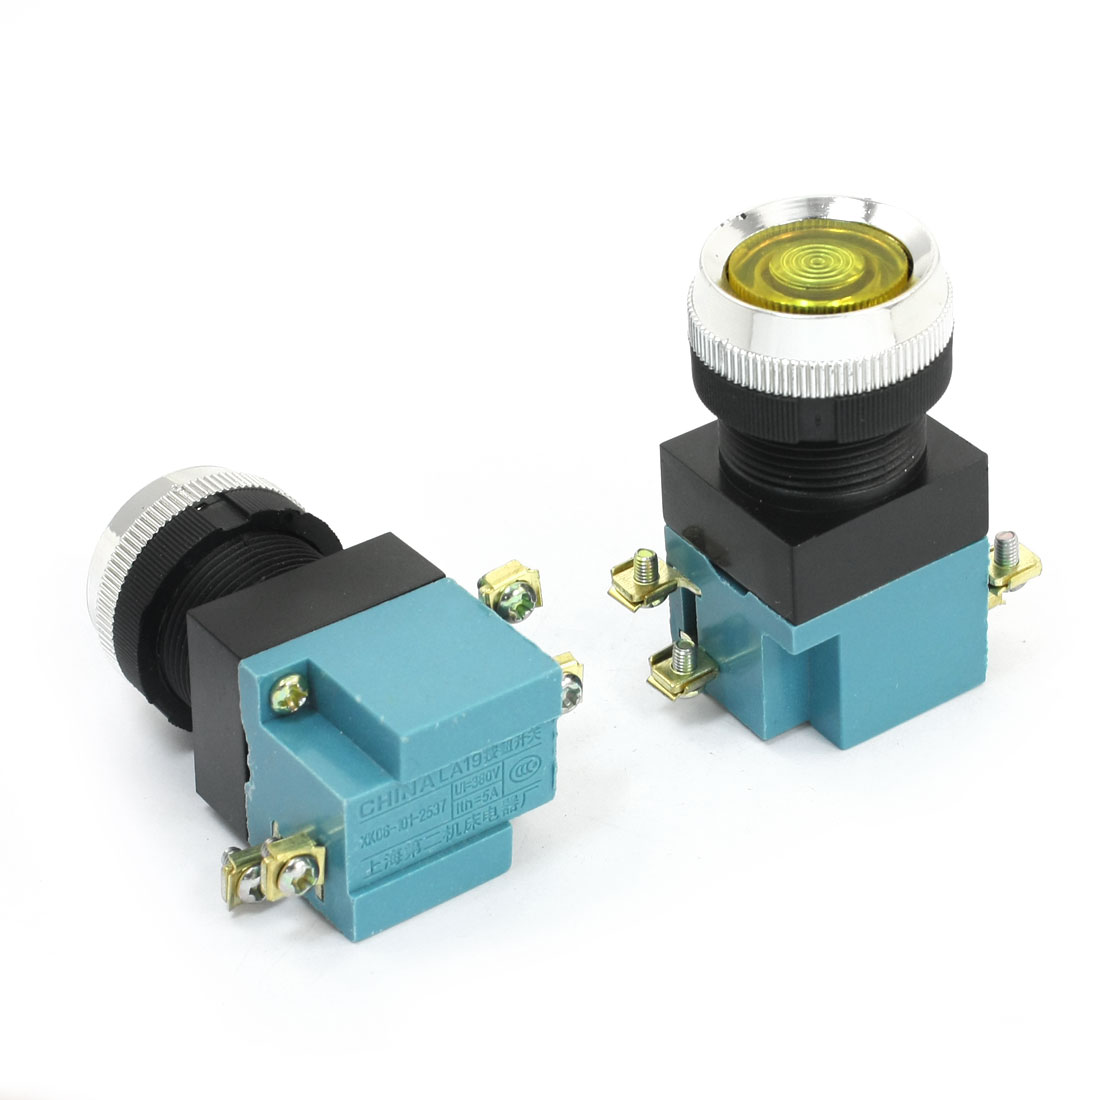 2Pcs Ui 380V Ith 5A 24mm Thread Panel Mounting 4 Screw Terminal DPST Momentary Yellow Button Push Switch